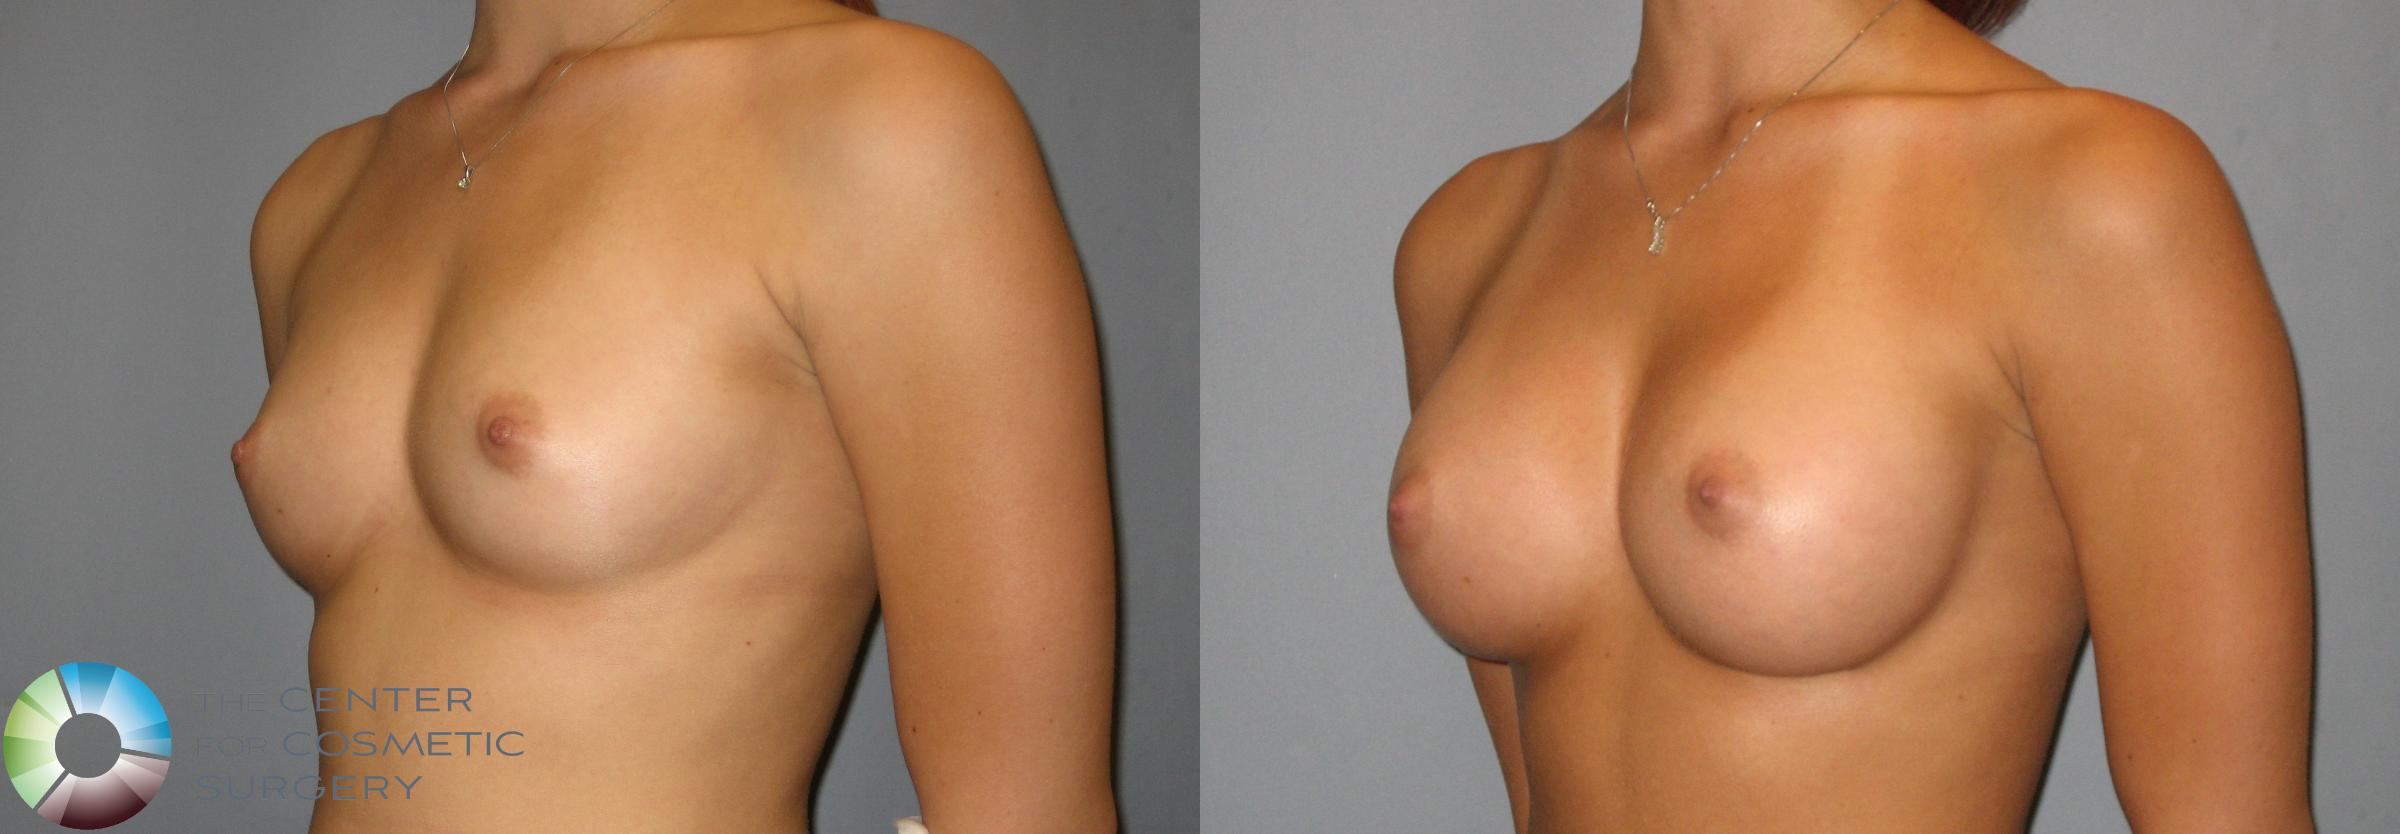 Breast Augmentation Case 275 Before & After View #2 | Golden, CO | The Center for Cosmetic Surgery